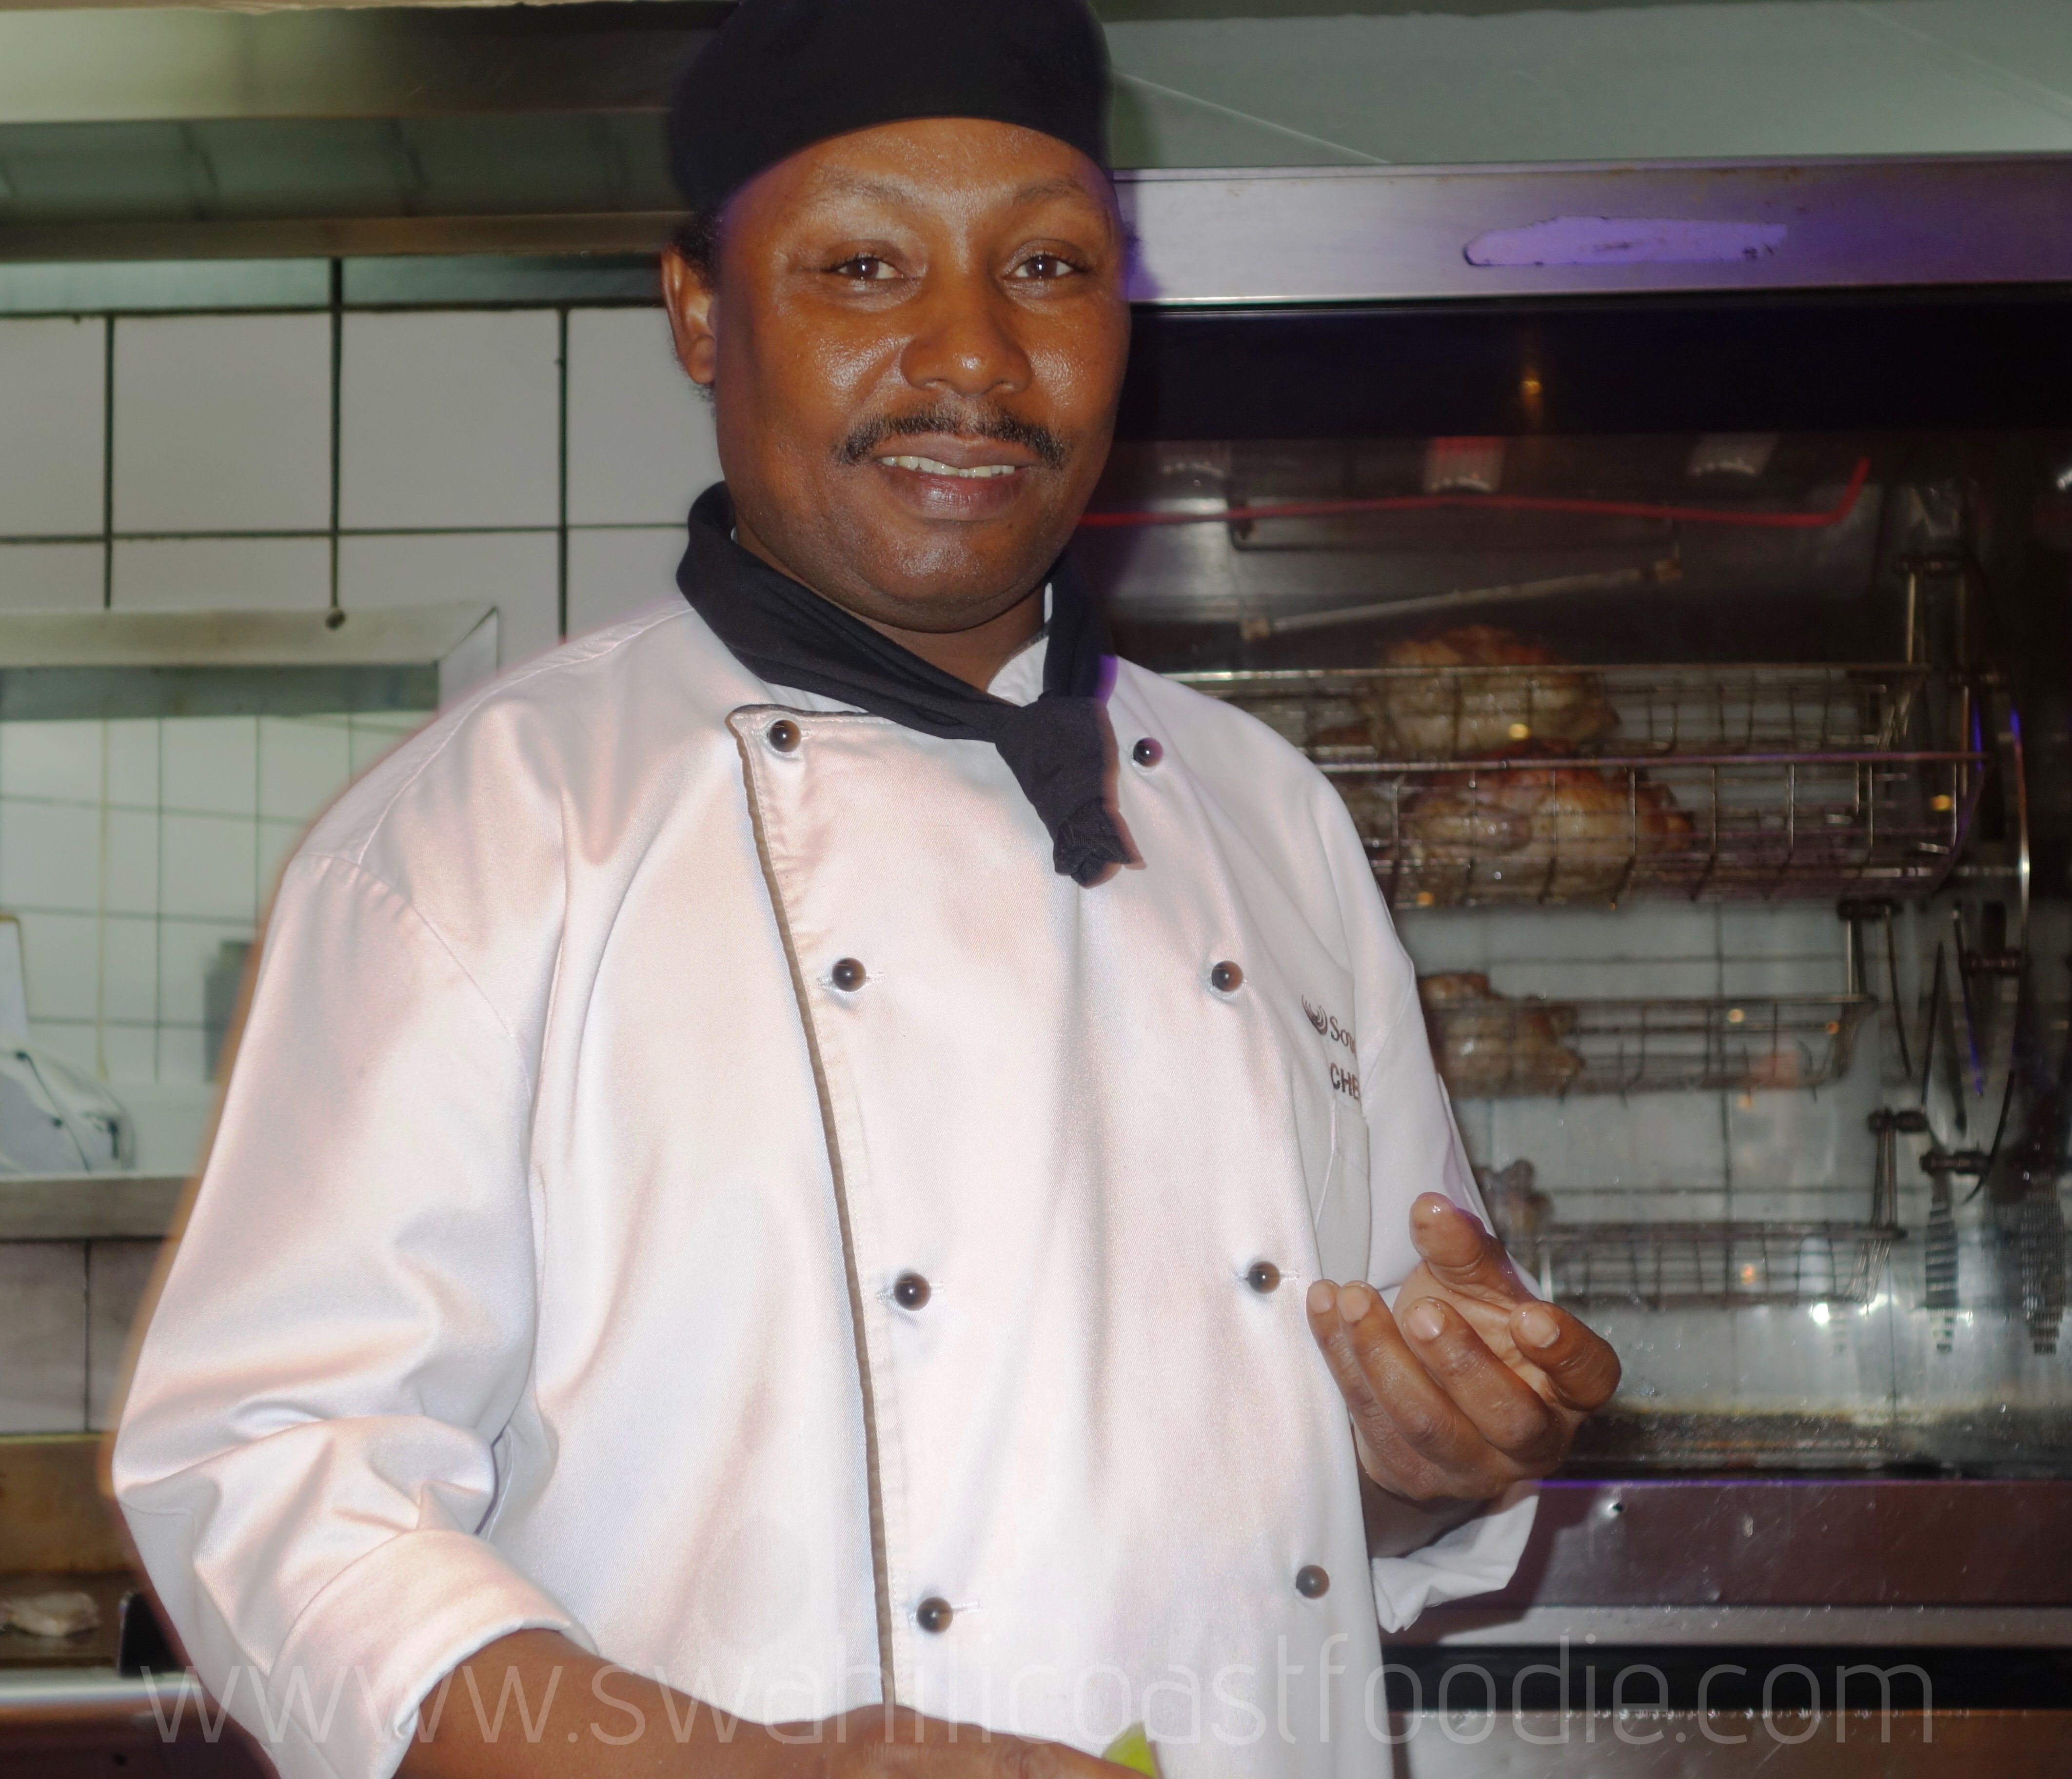 Sous Chef 1 watermark